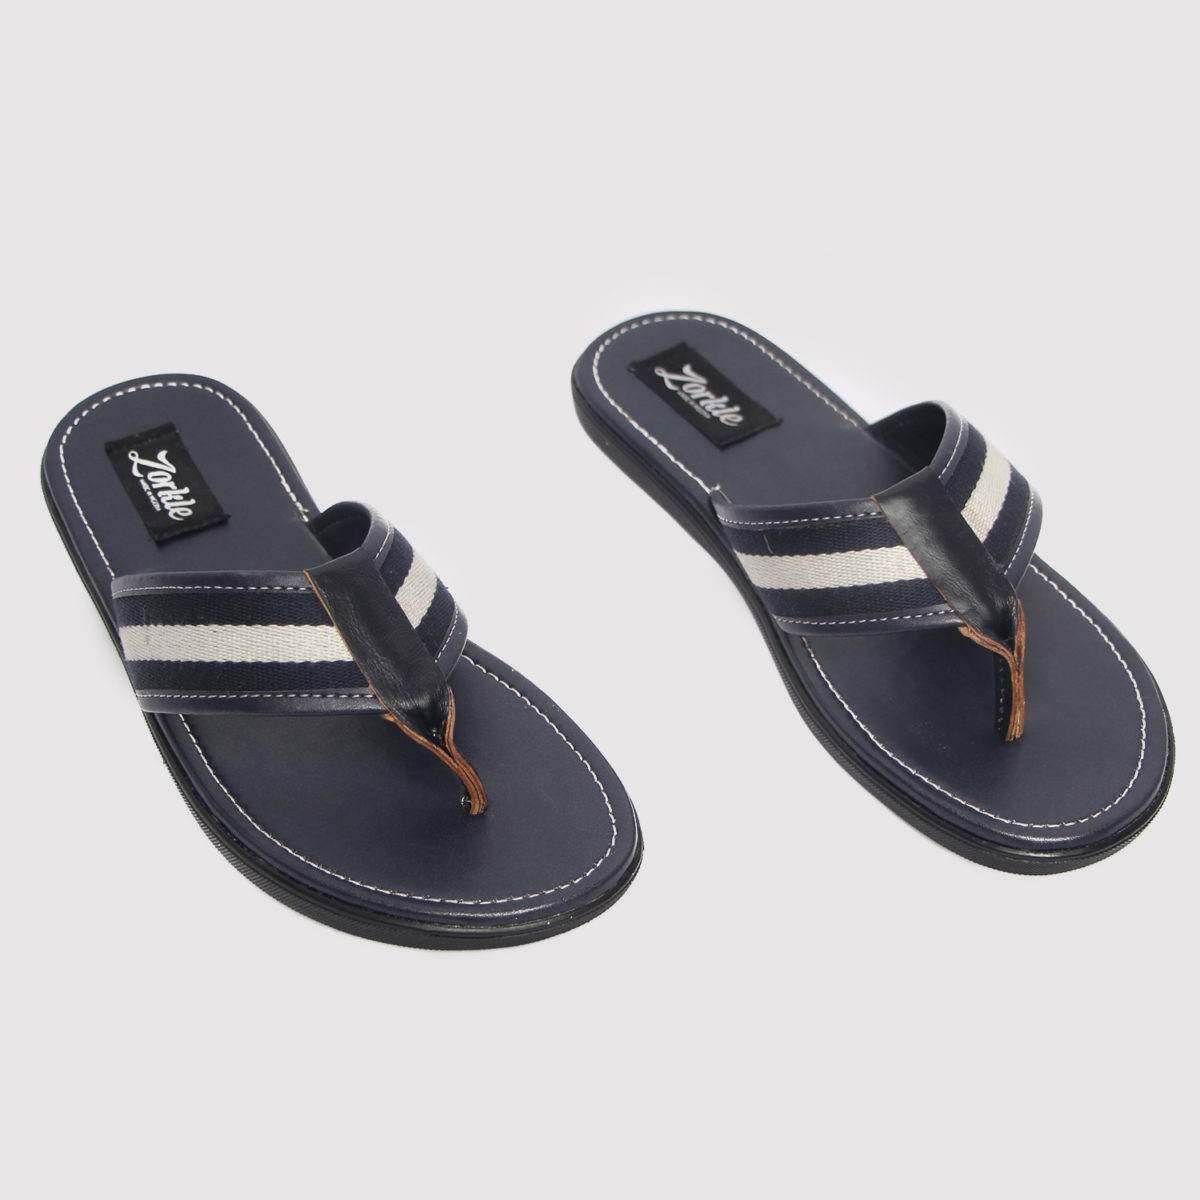 Lere flex slippers blue leather male zorkle shoes in lagos nigeria